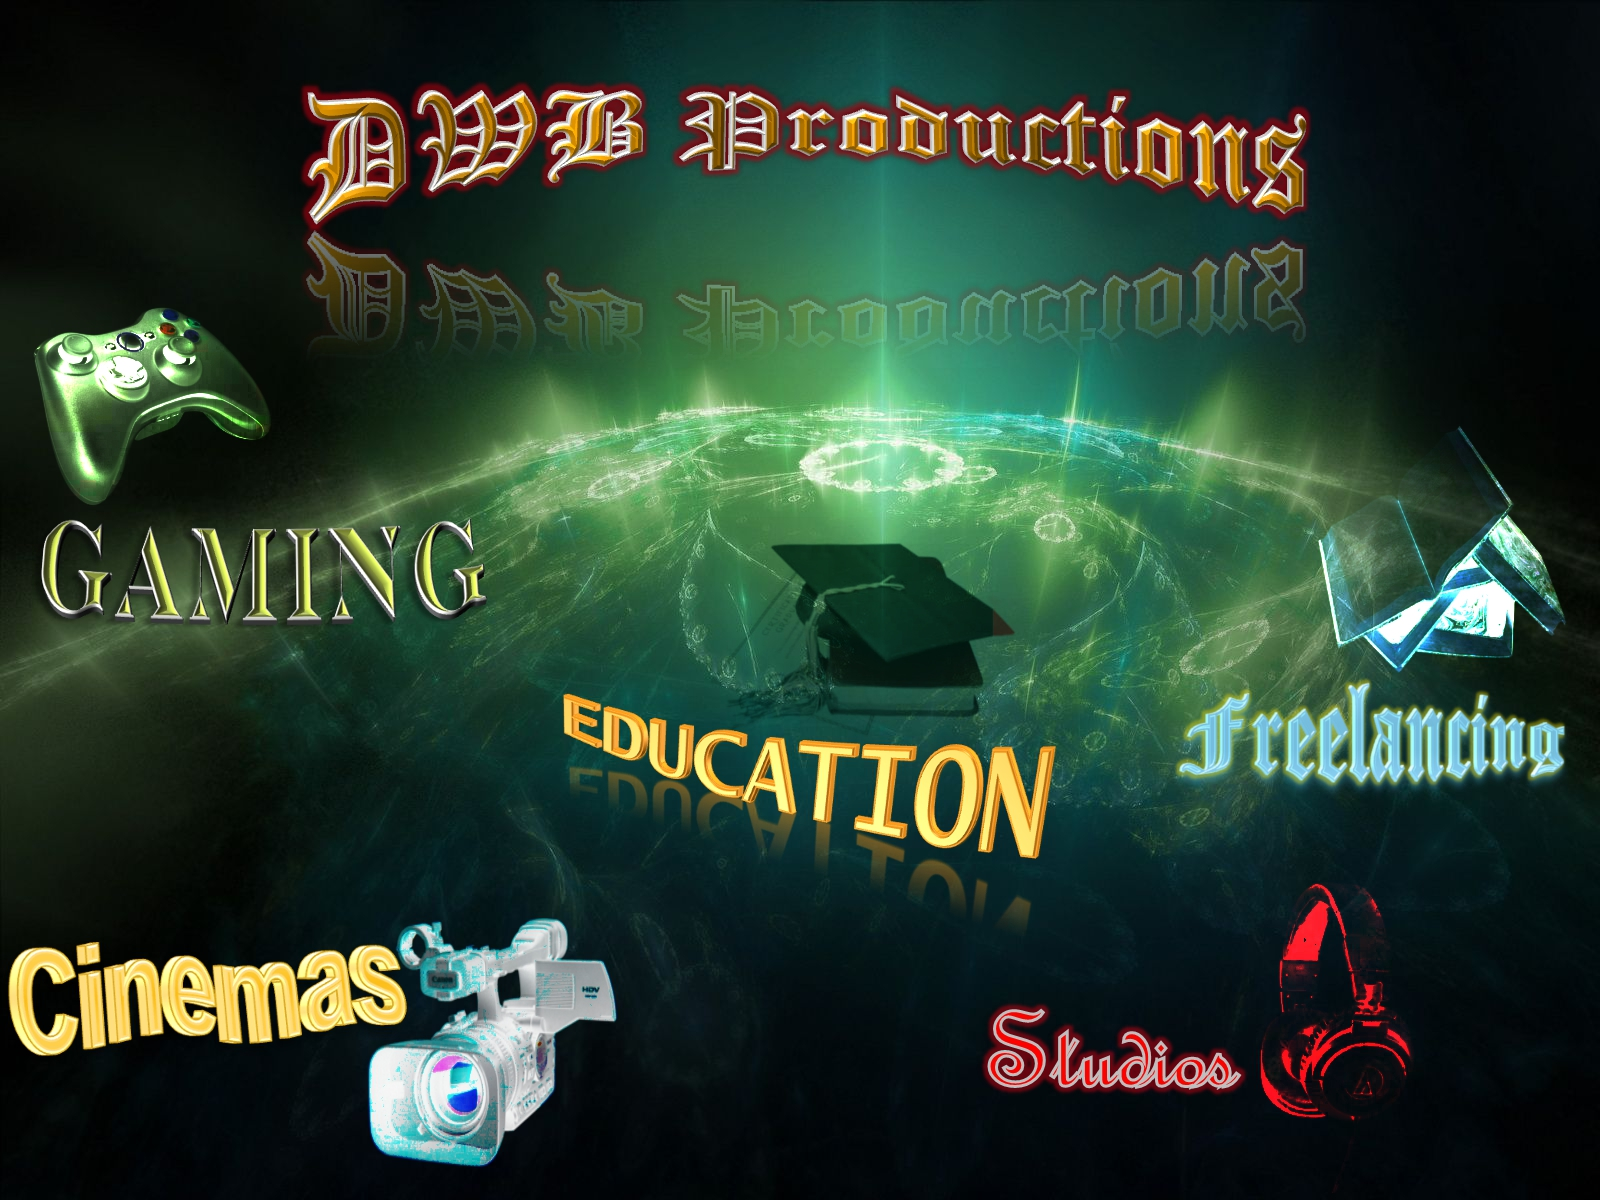 DWB Productions